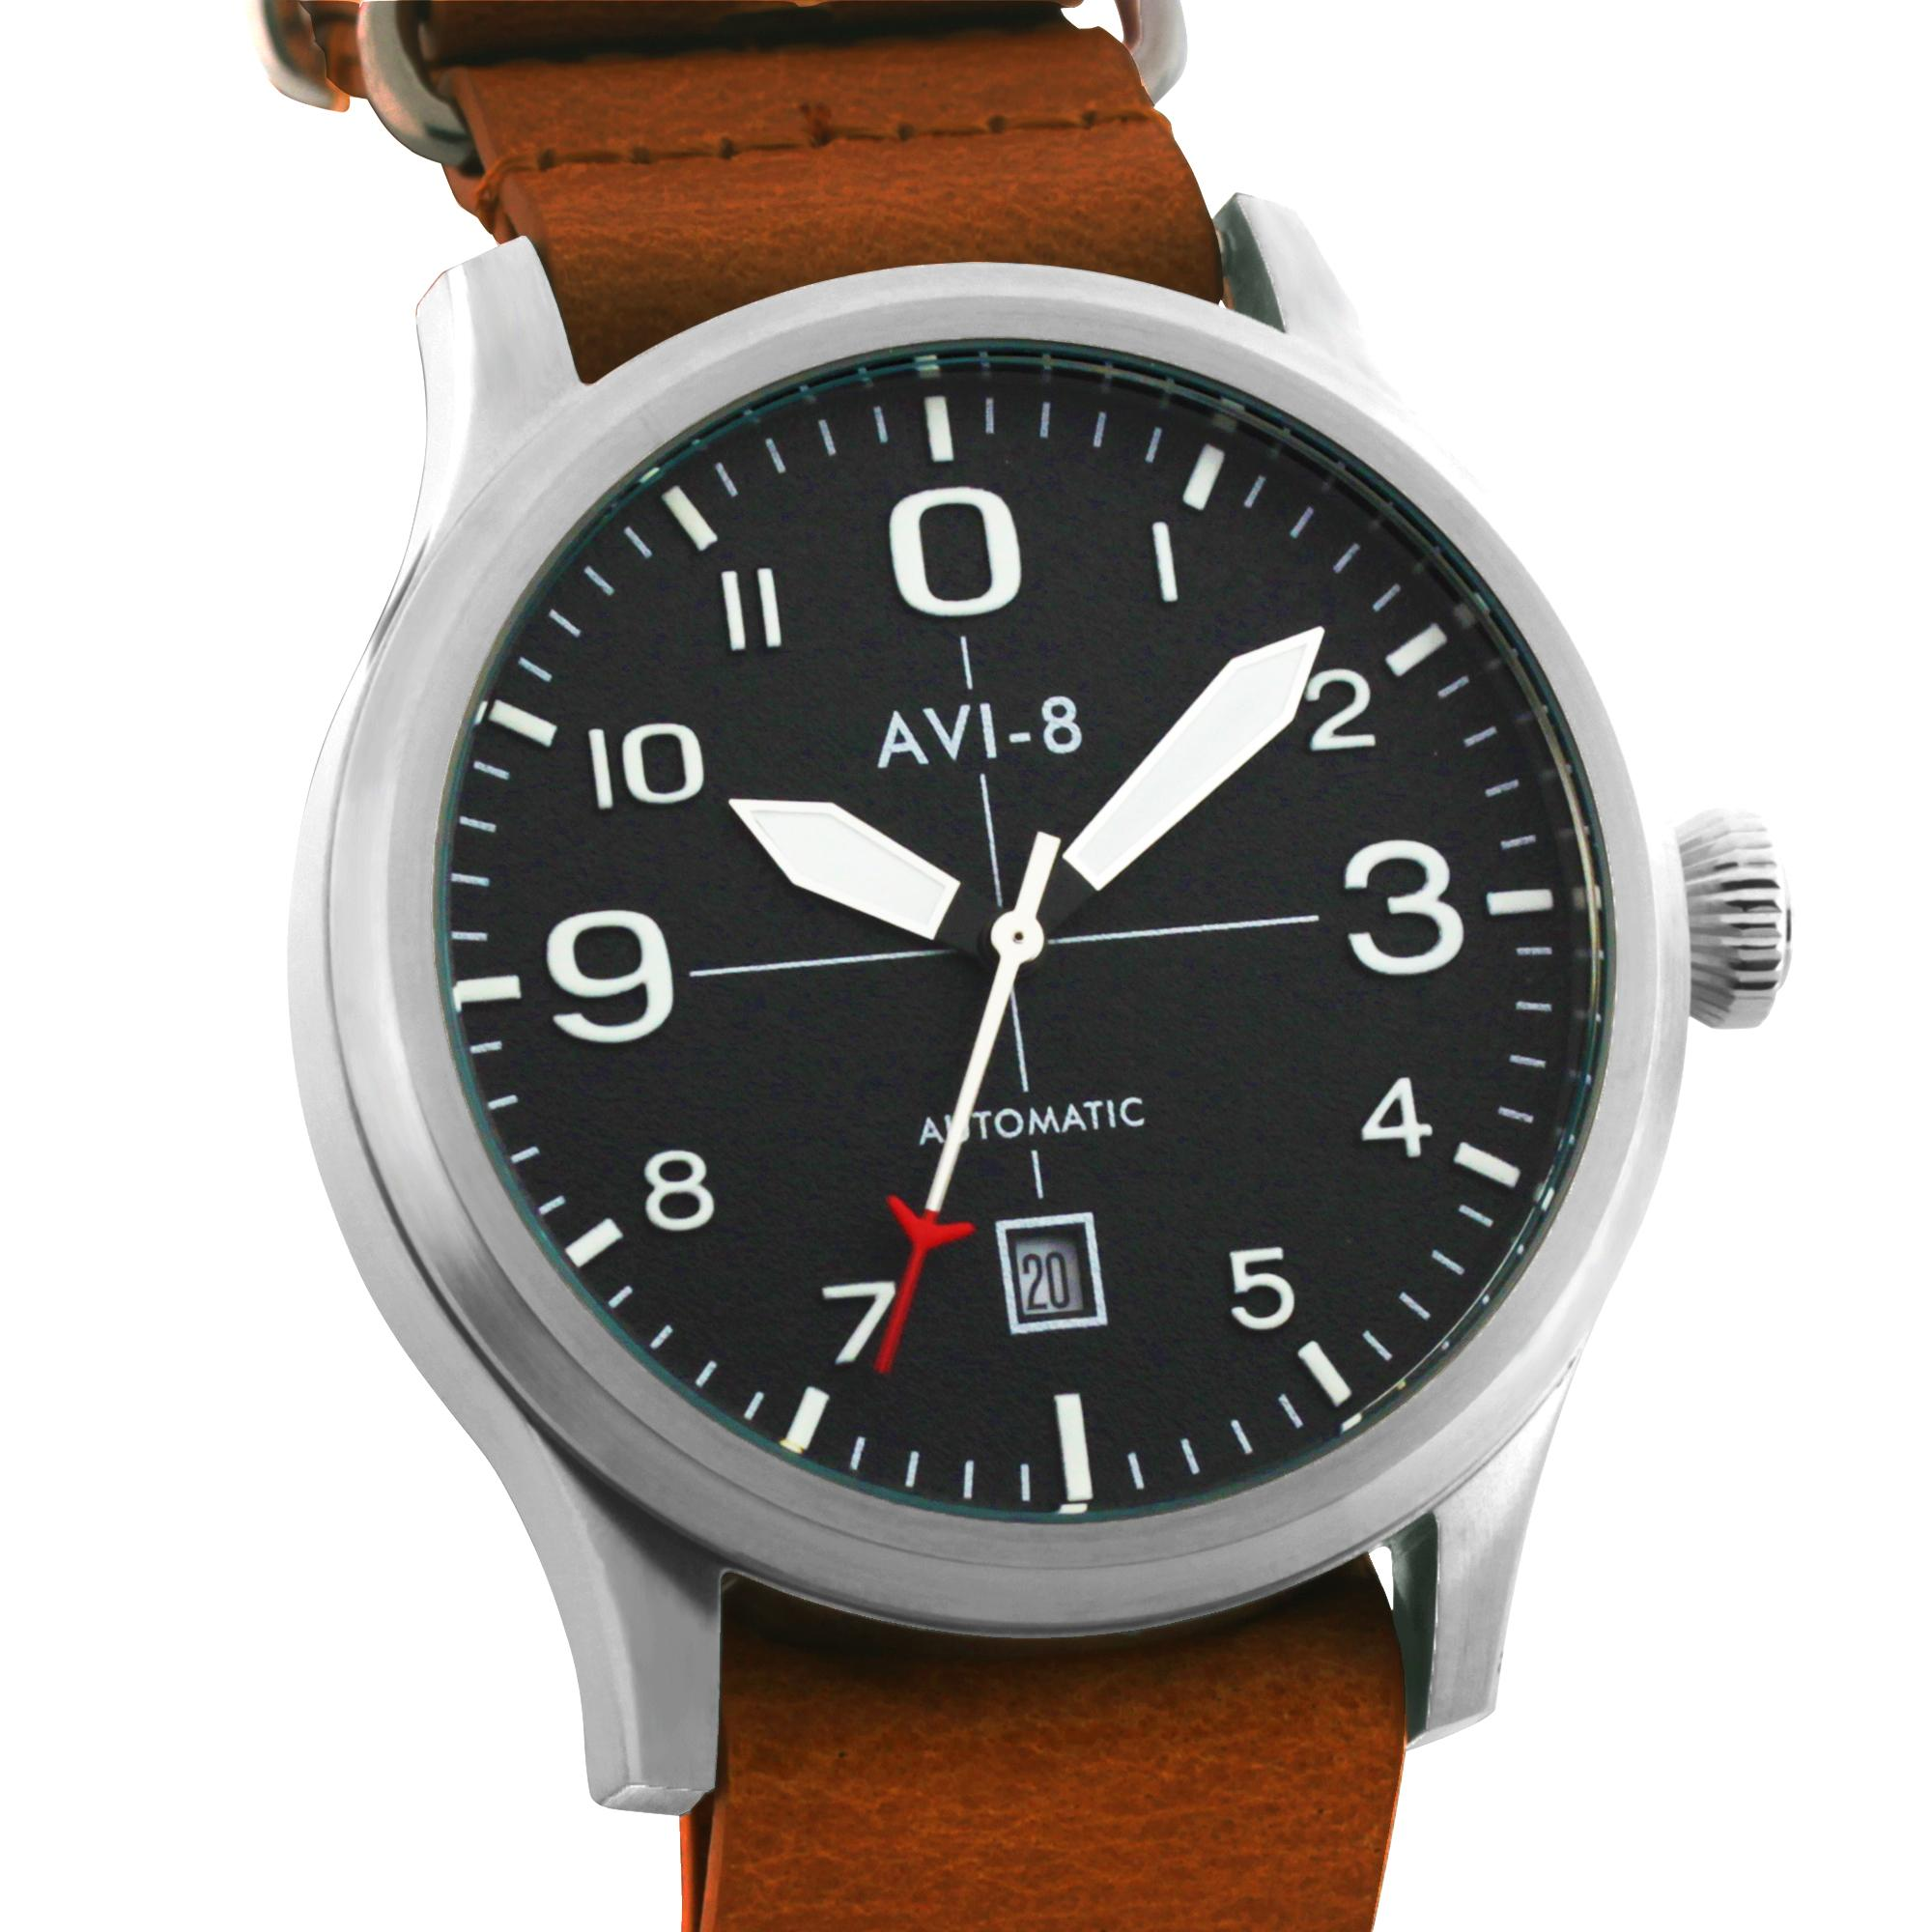 watch products sb parnis co store watches aviator buy img official